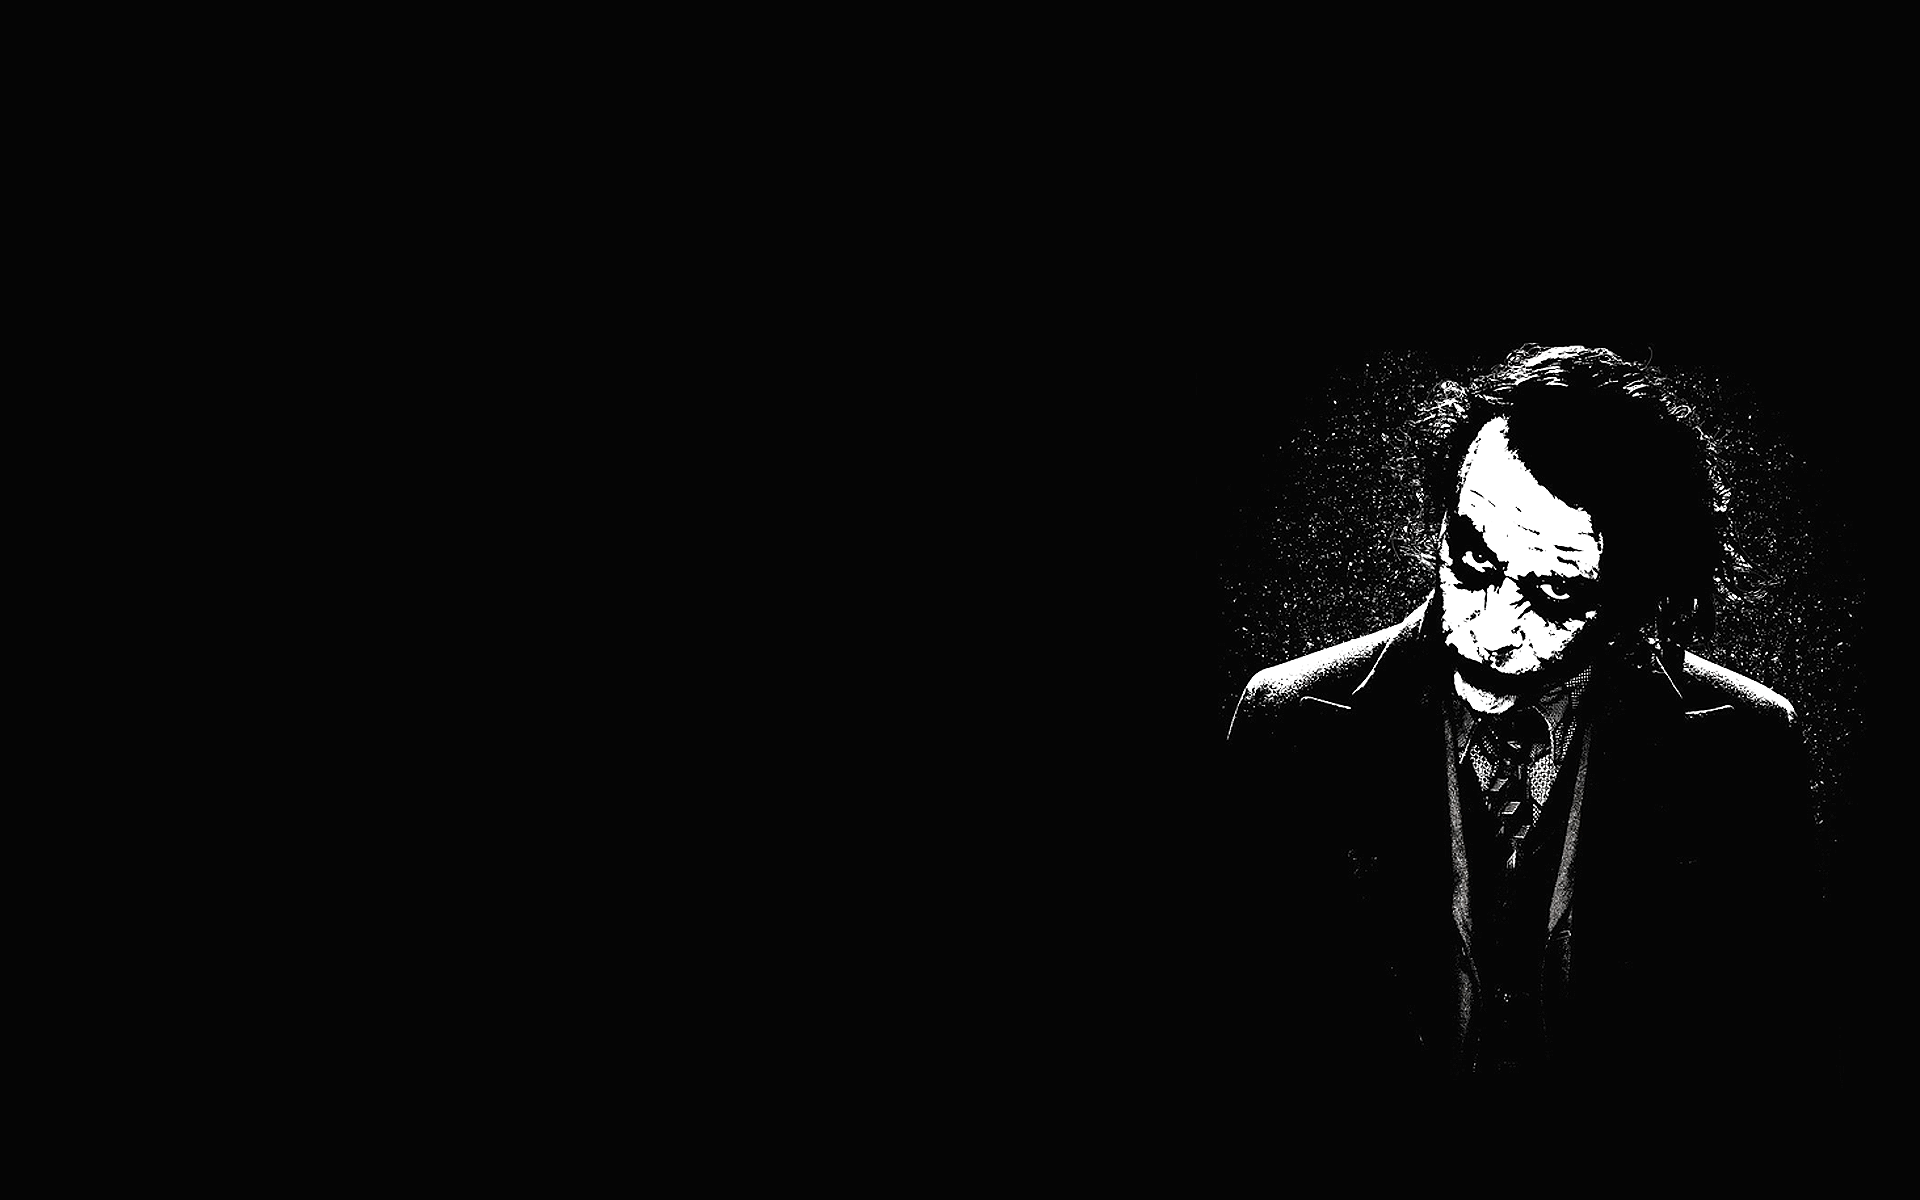 Joker hd wallpaper 1157712